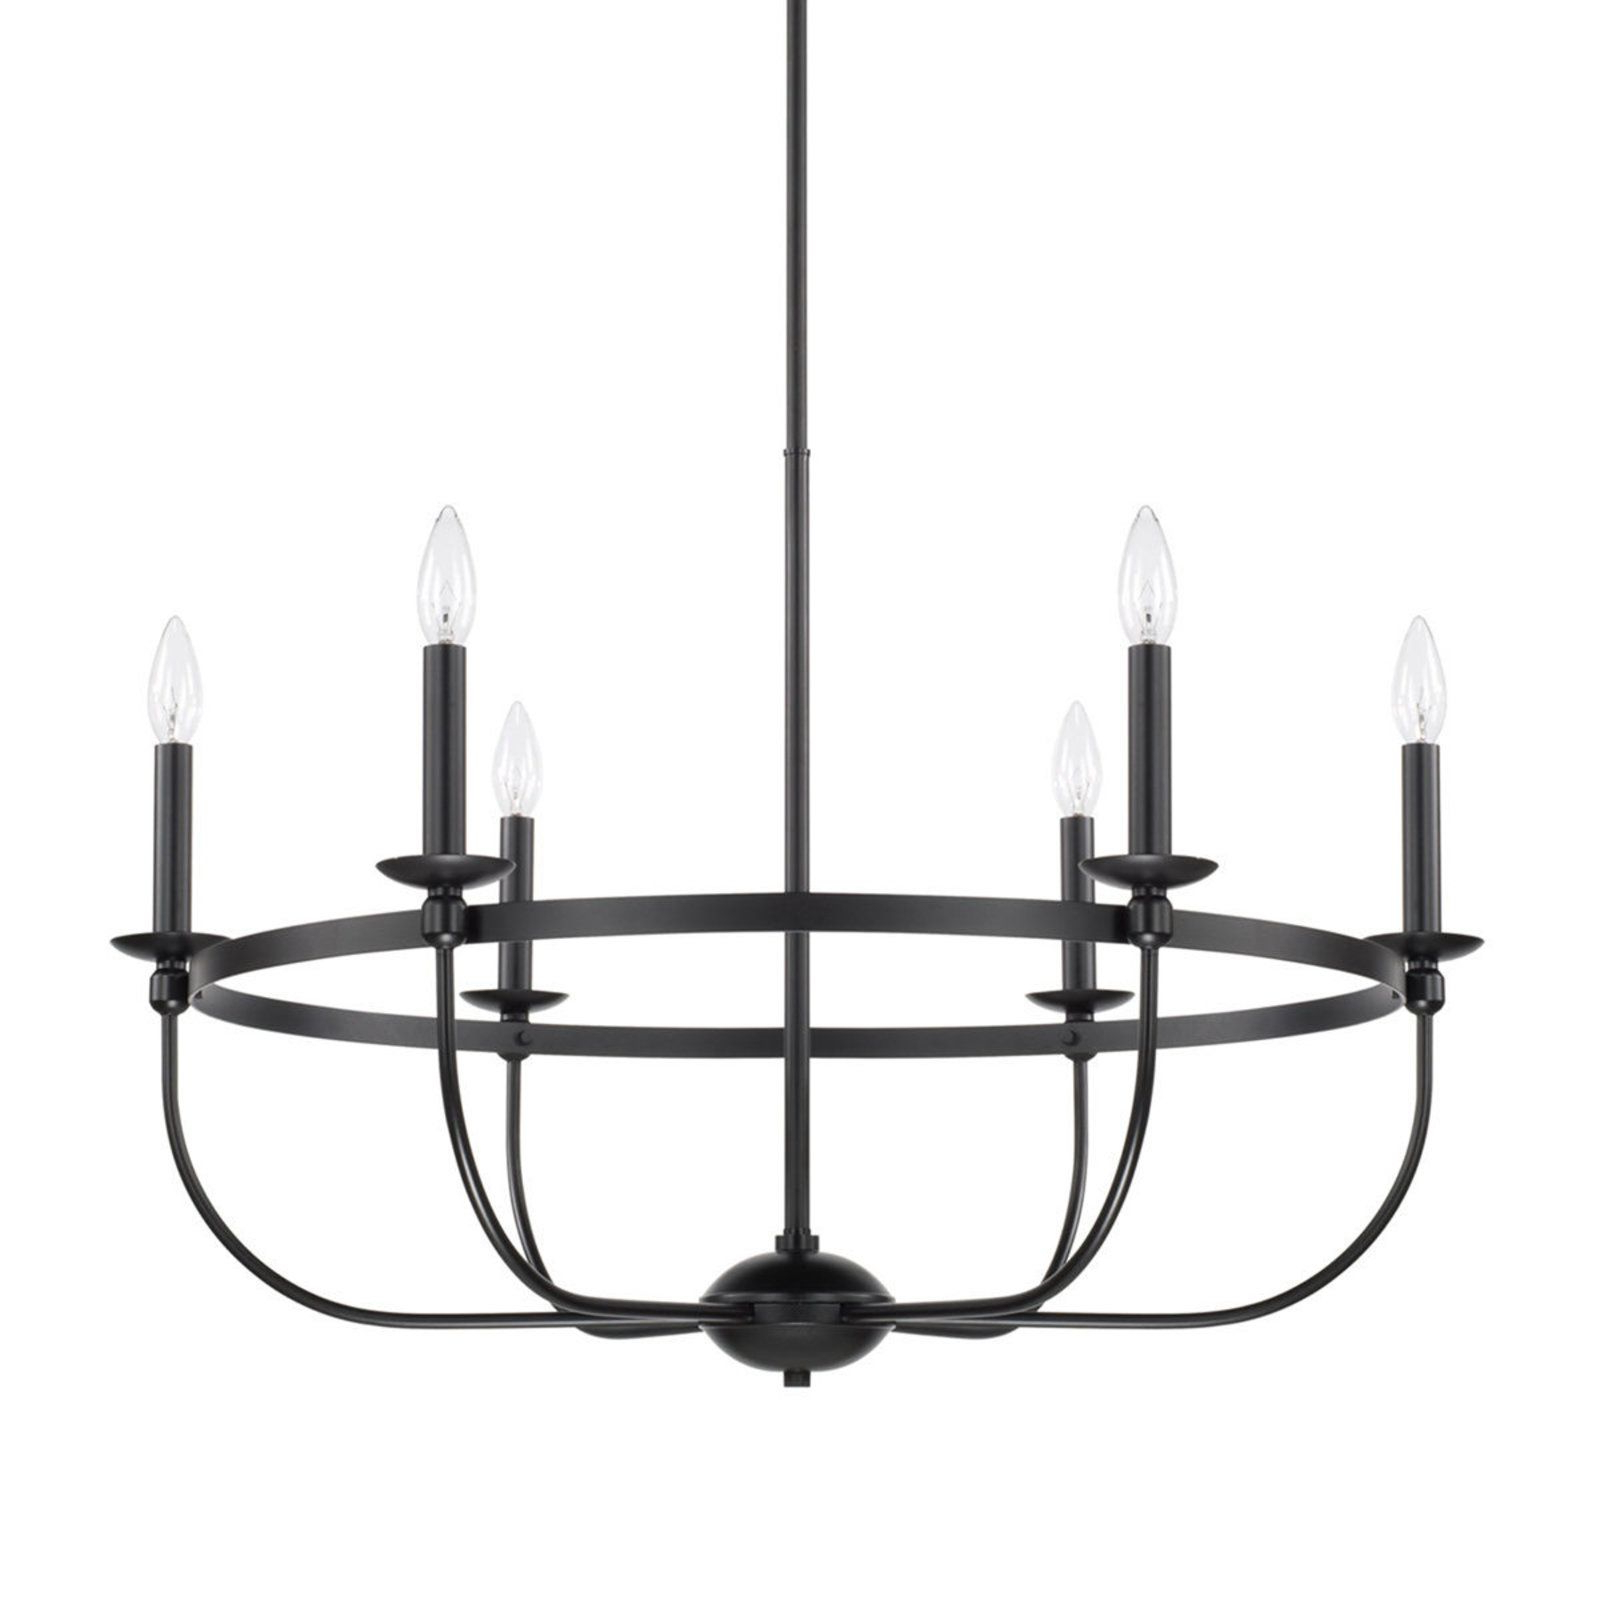 Hamza 6 Light Candle Style Chandeliers Intended For 2019 Simply Black Basket Chandelier – 6 Light In  (View 6 of 25)